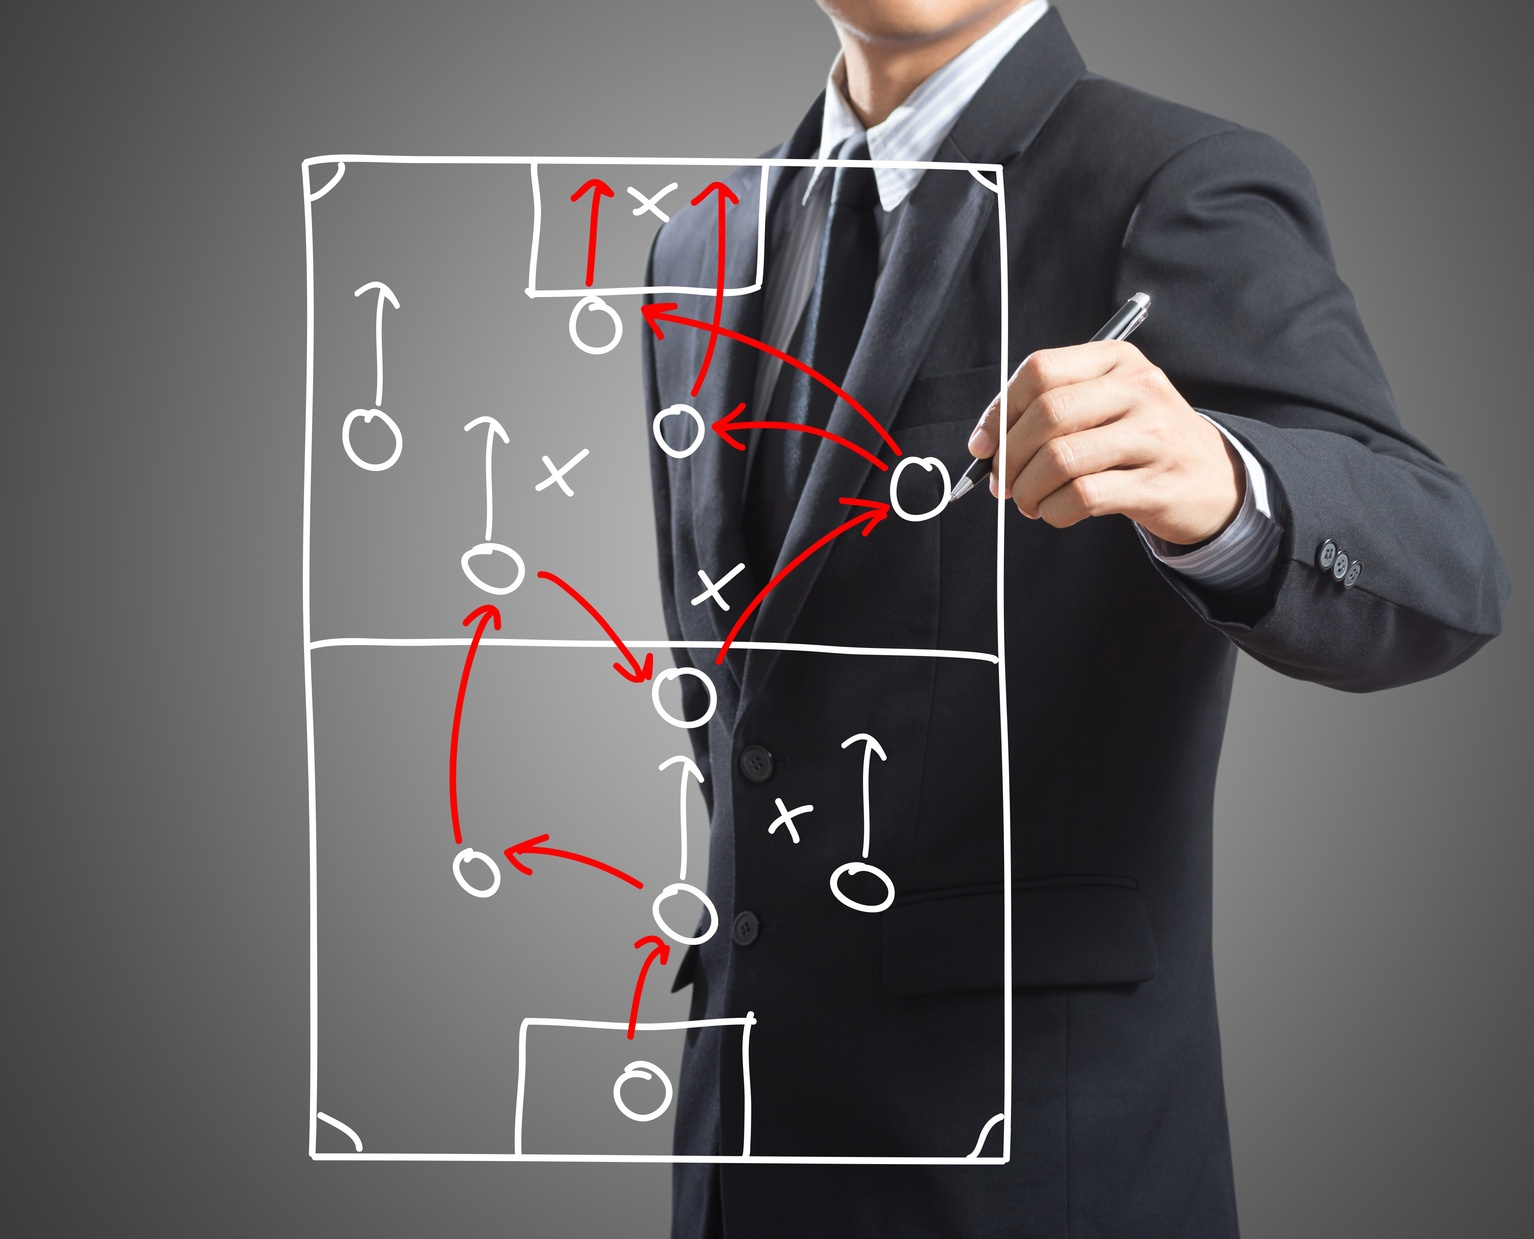 3 Tips to Help Managers Coach Sellers More Effectively